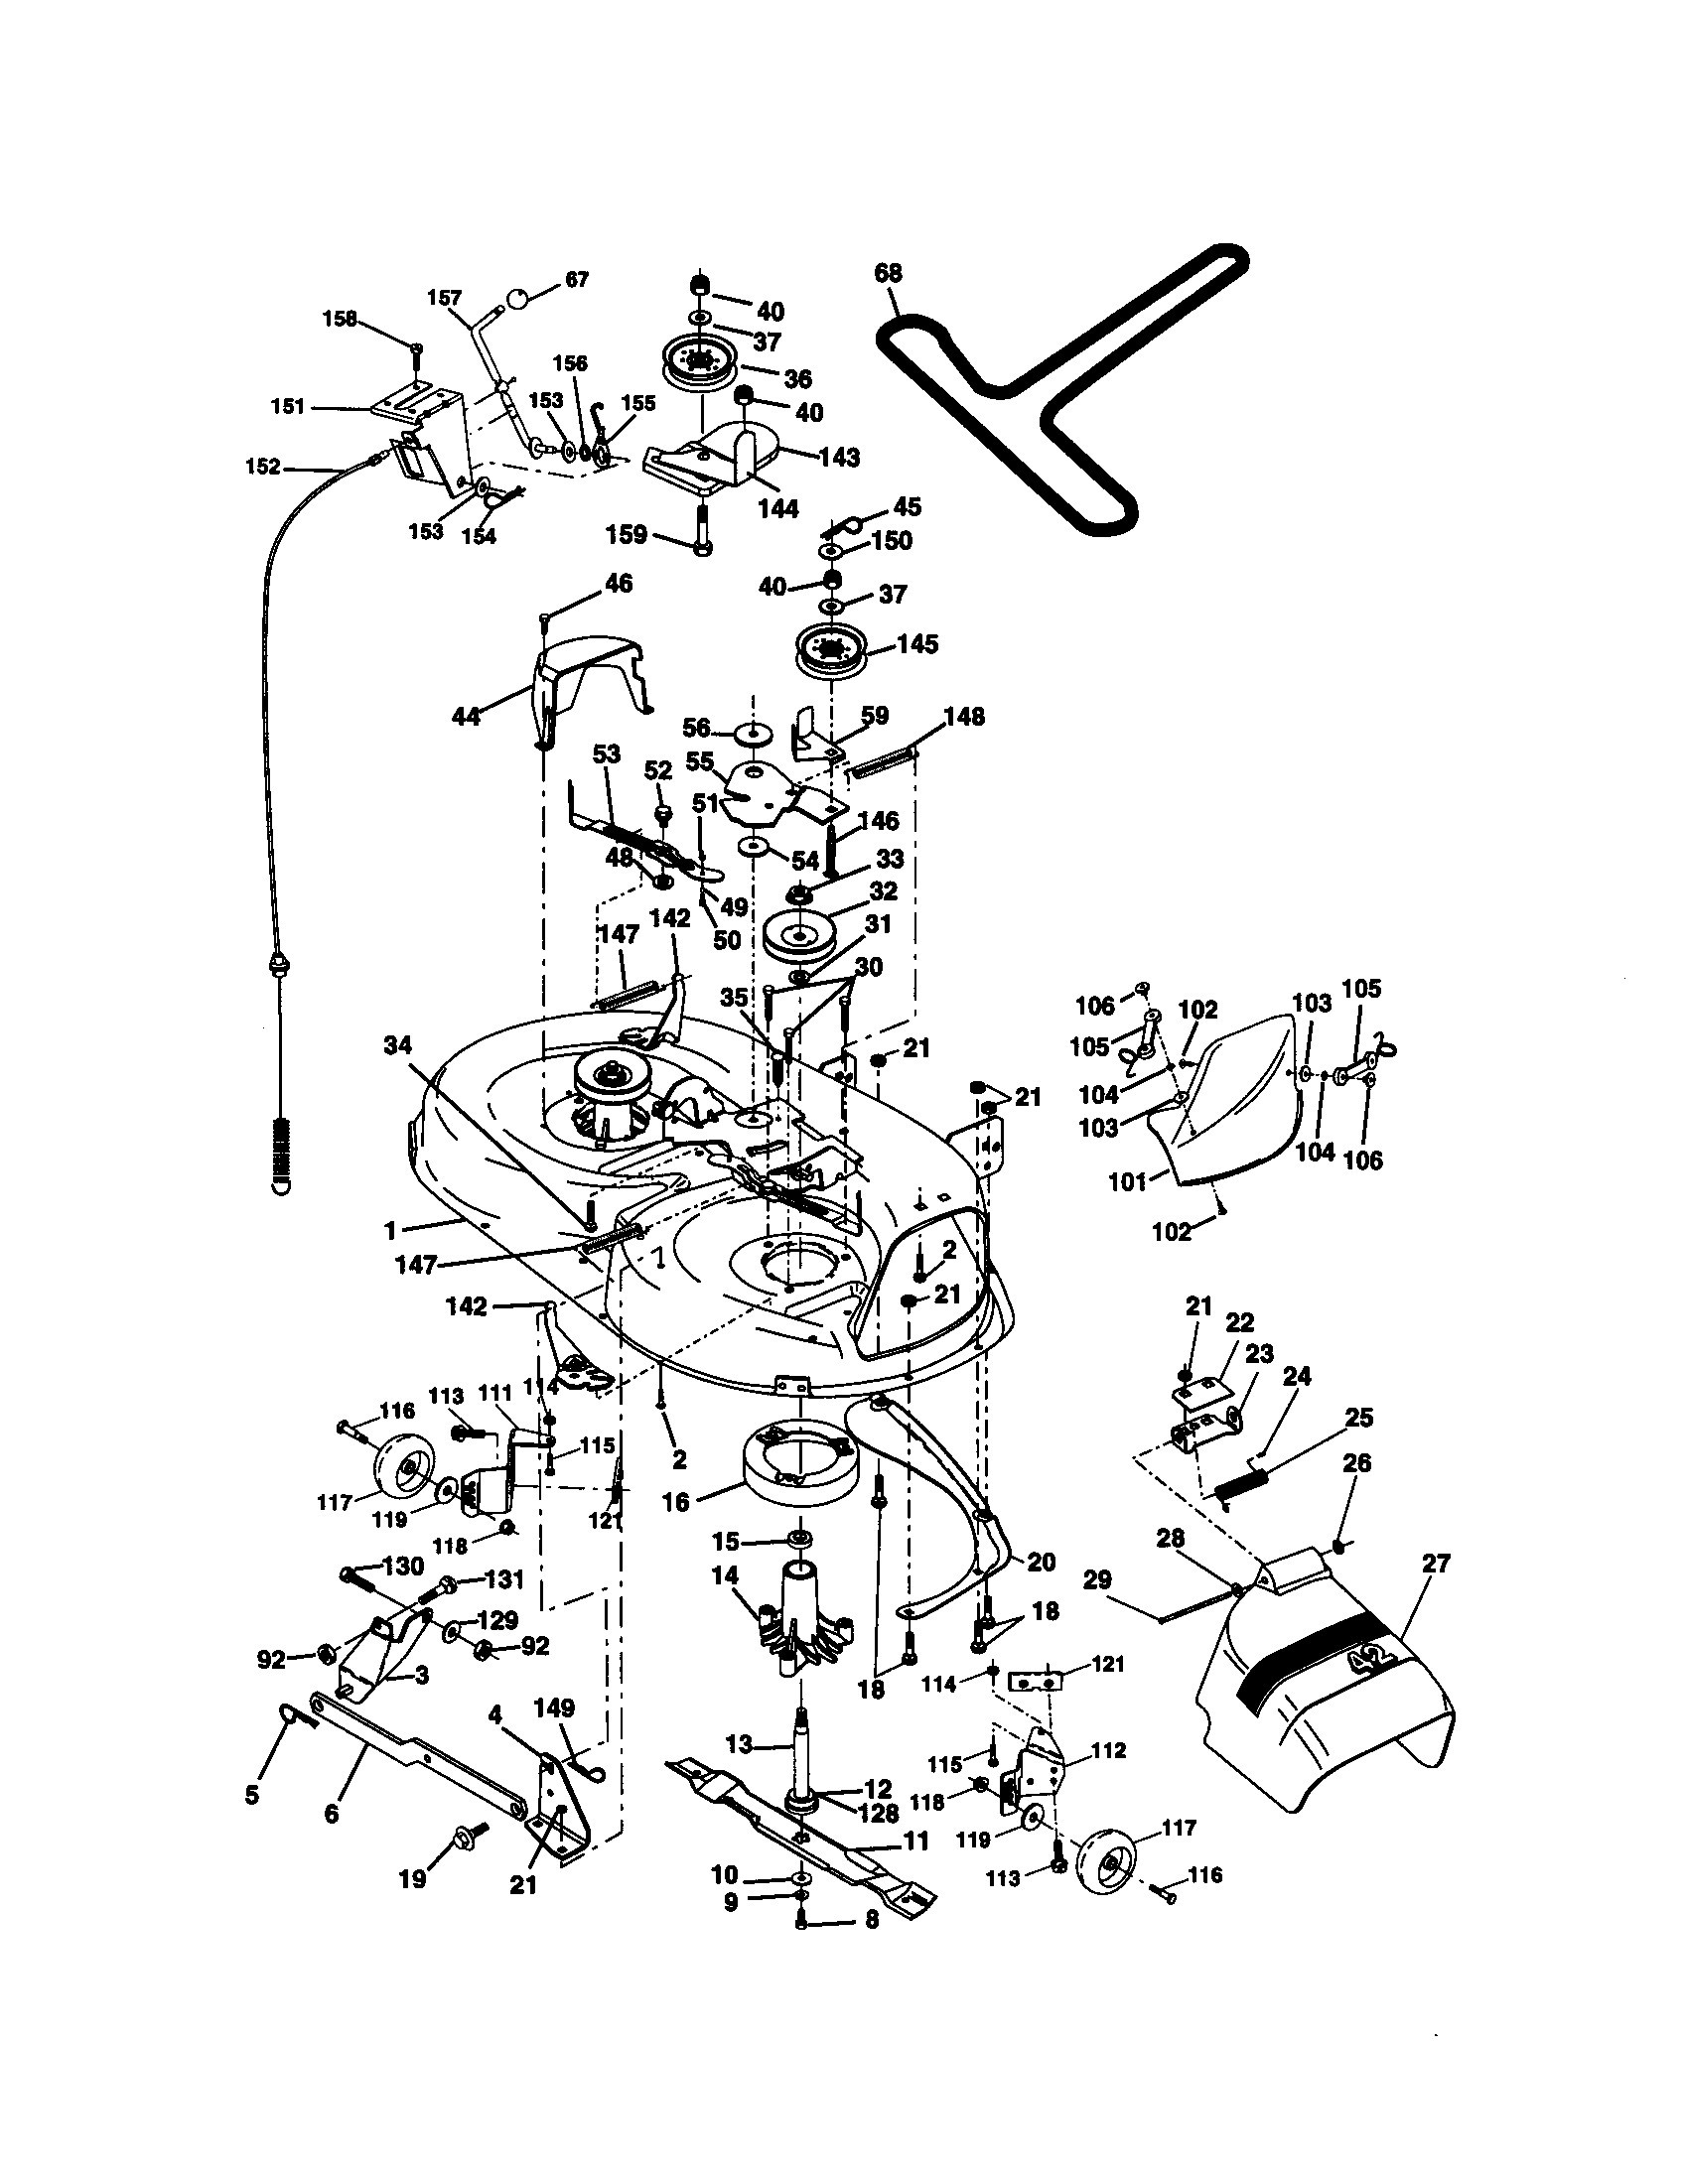 Briggs and Stratton Lawn Mower Engine Diagram Briggs Stratton Engine Diagram 2 Craftsman Model Lawn Tractor Of Briggs and Stratton Lawn Mower Engine Diagram